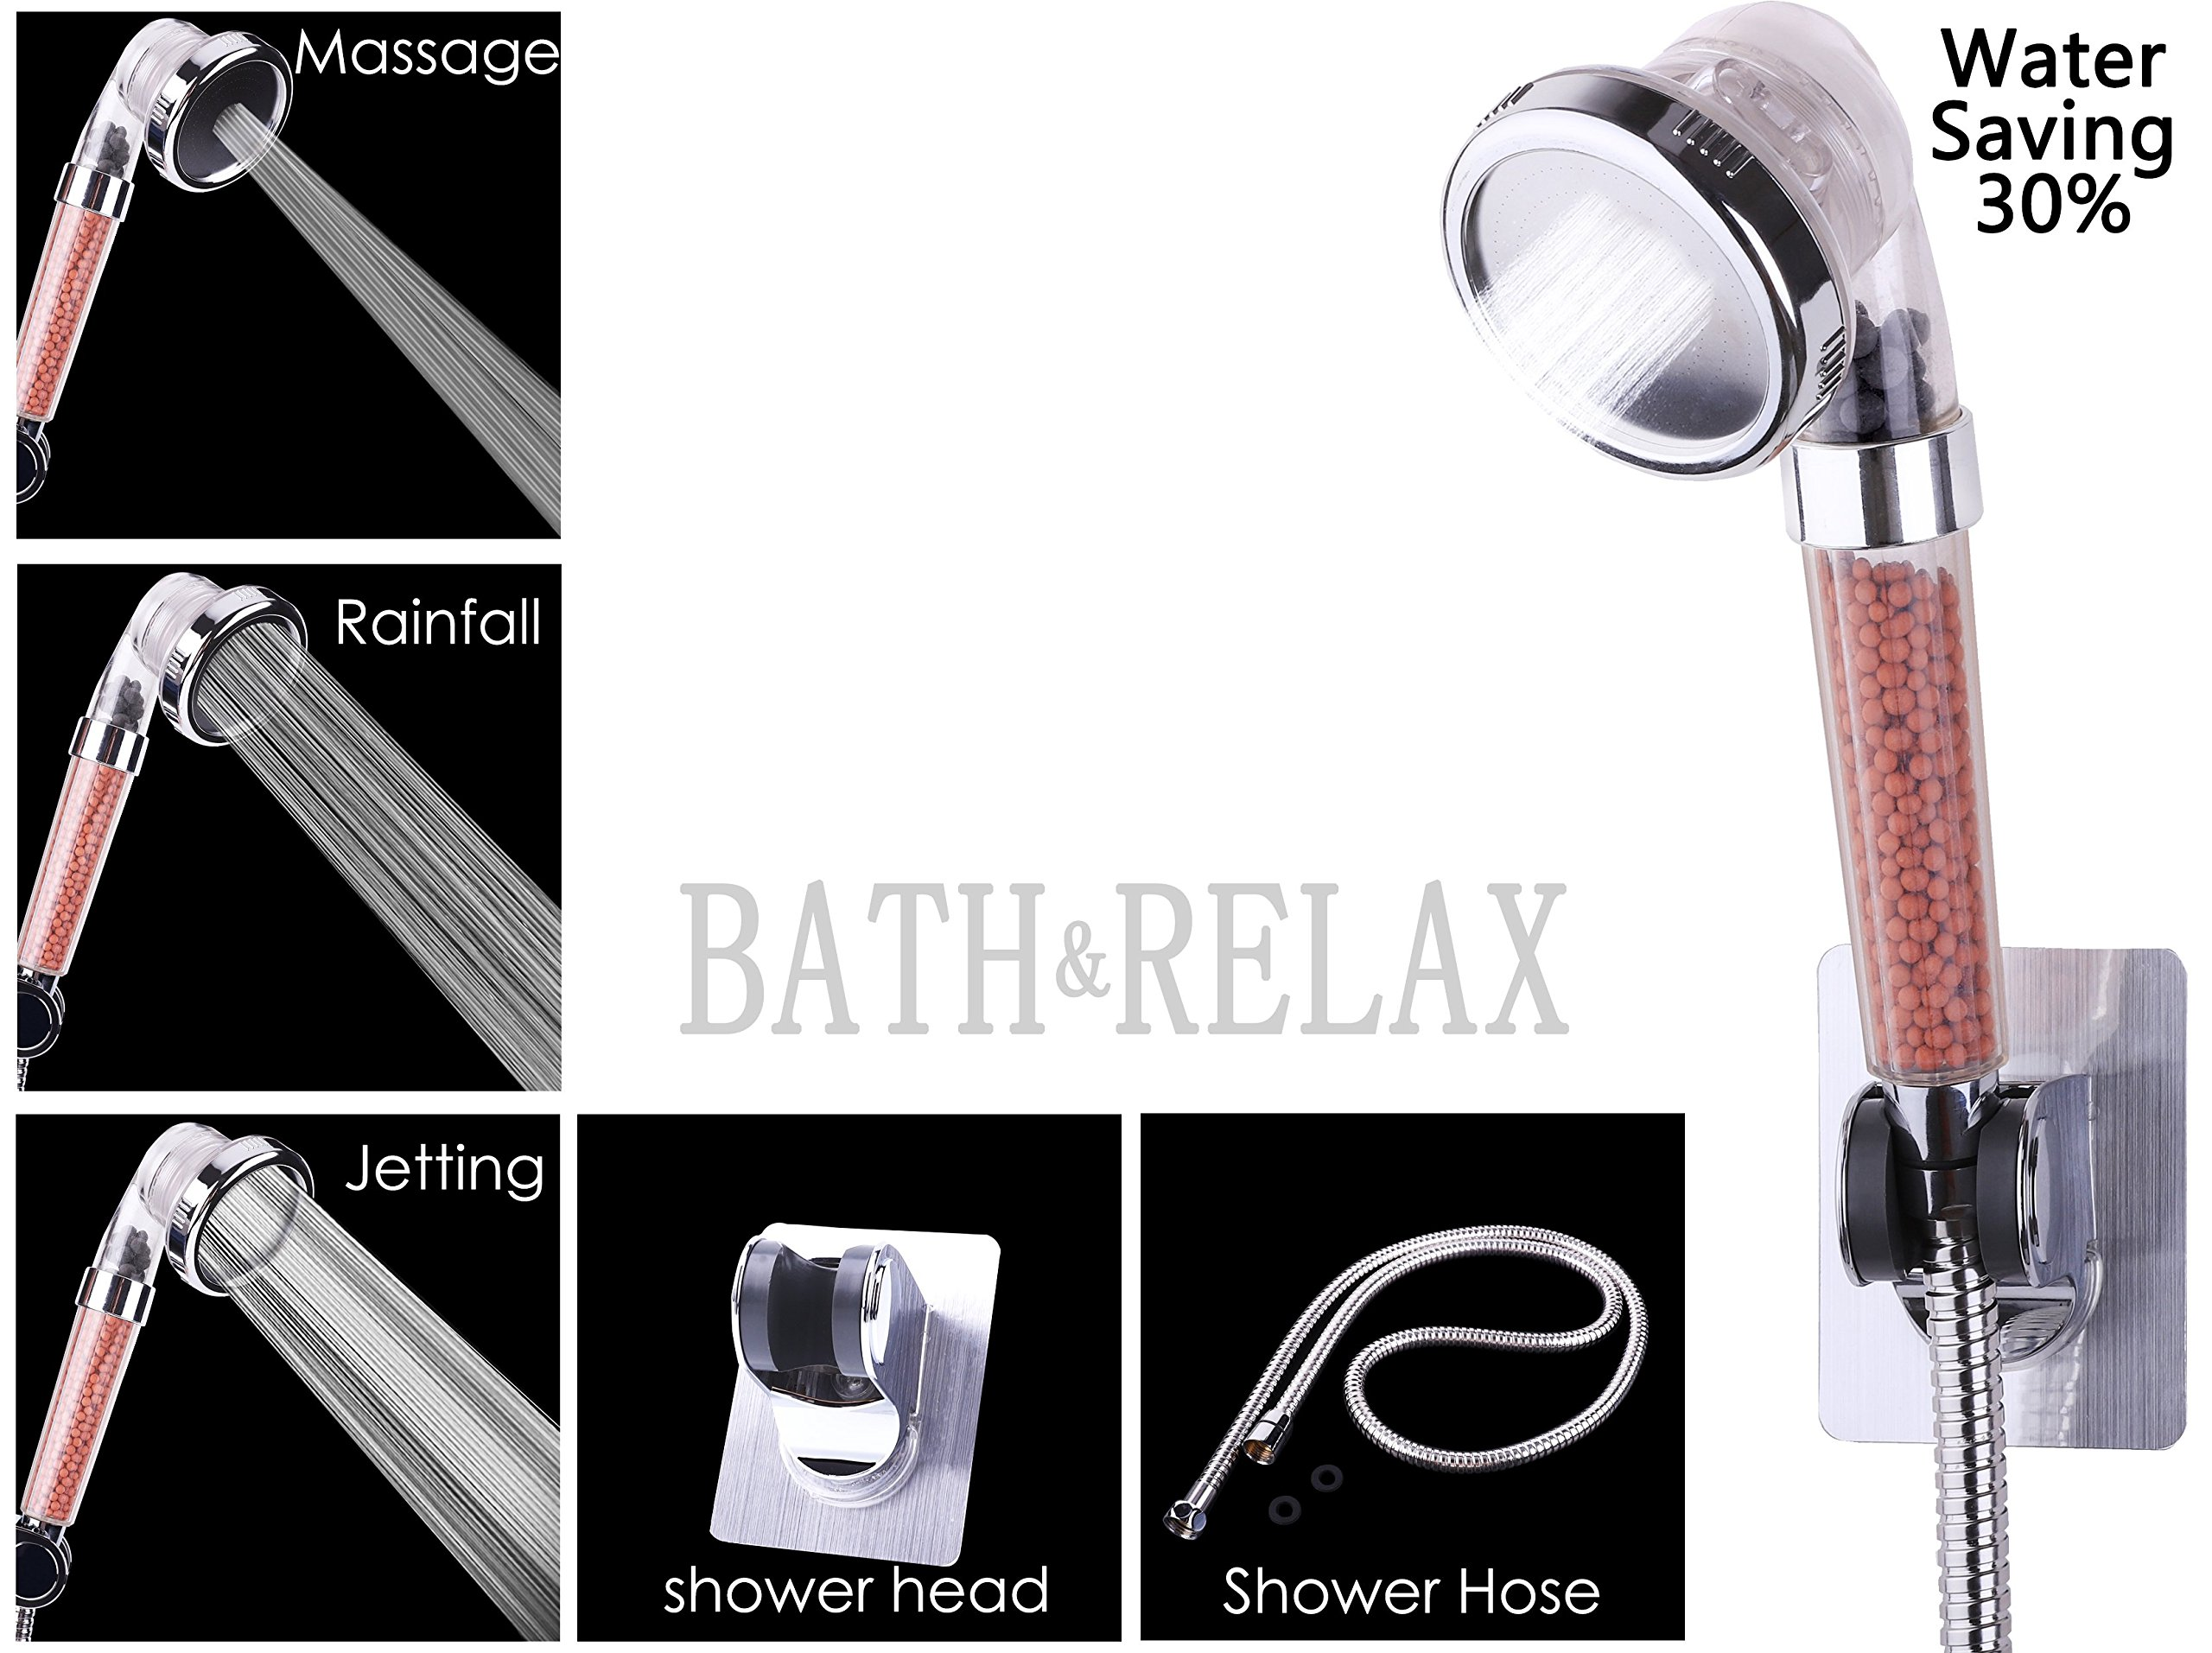 Filtered Hand Held Shower Head Kit, Water Saving Home Spa Shower Head with 3 Settings, Reduces Hair Loss, Purify Water&Remove Chlorine, Hose & Mount Included, Easy Install (Plus a Shower Hose&Mount) by Bath & Relax